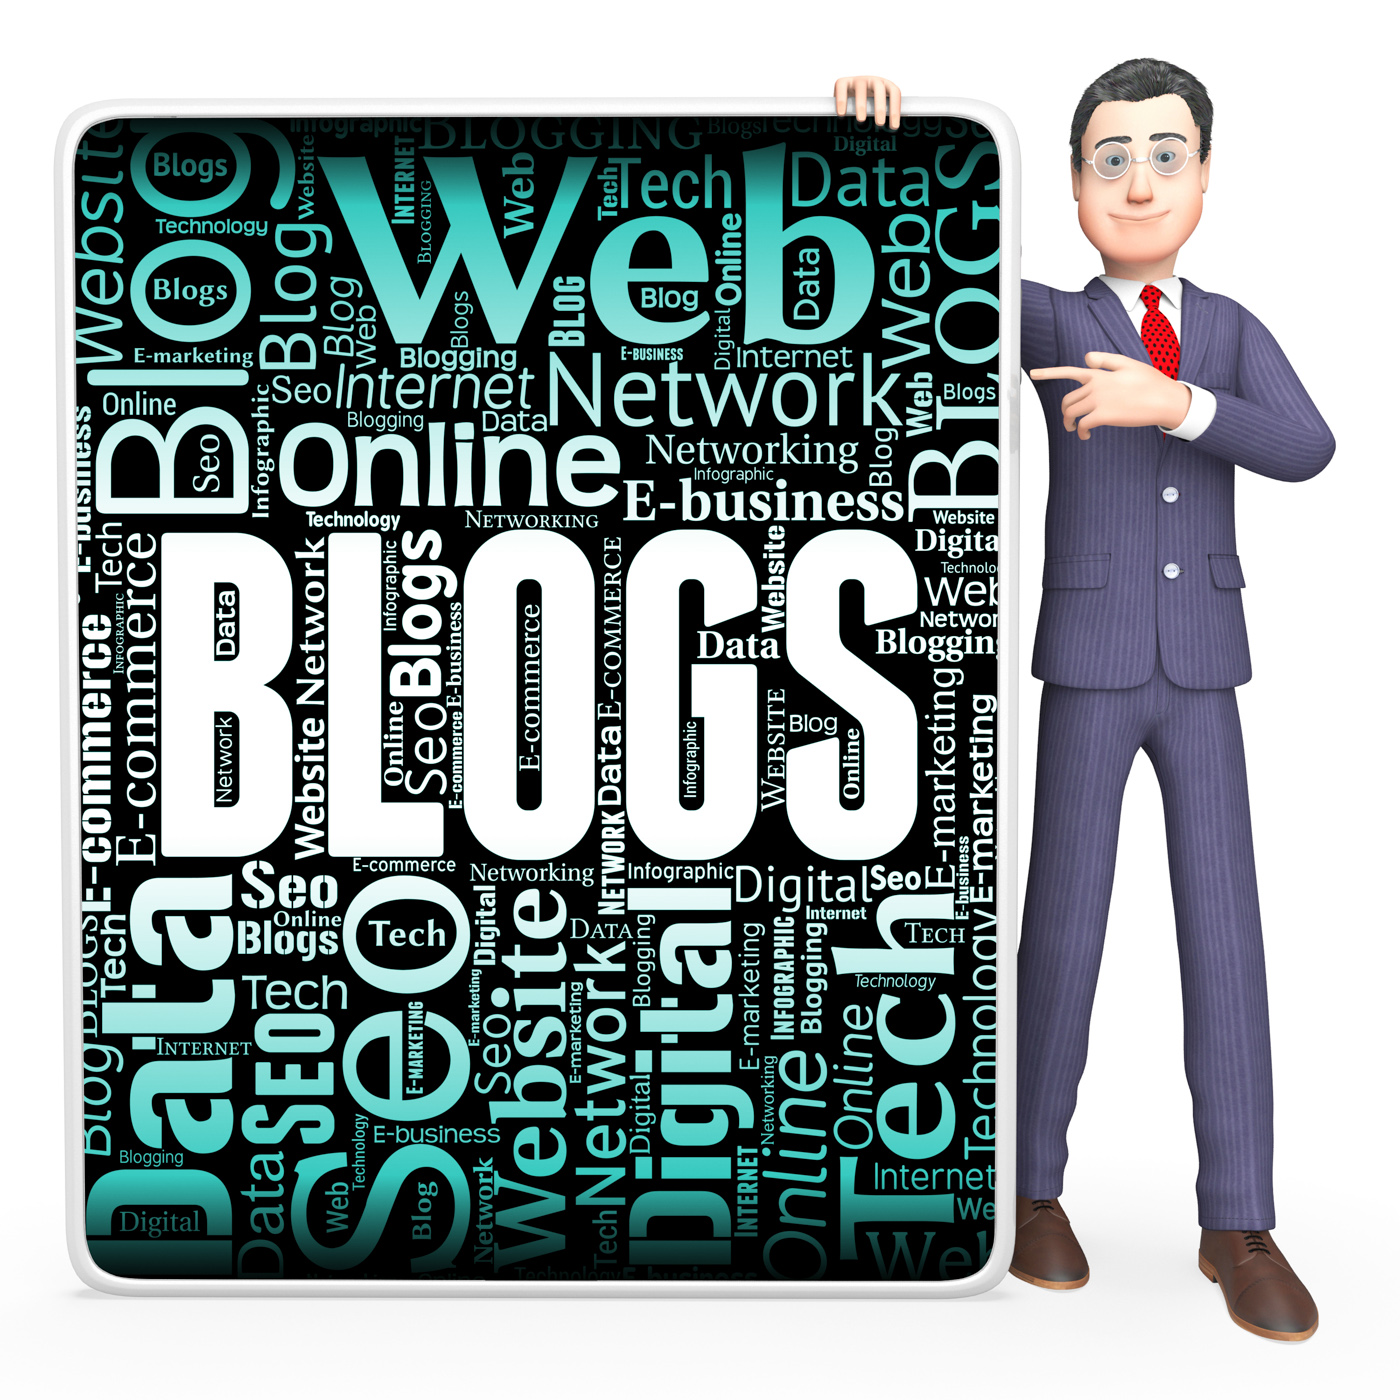 Blogs sign indicates web site and blogger photo